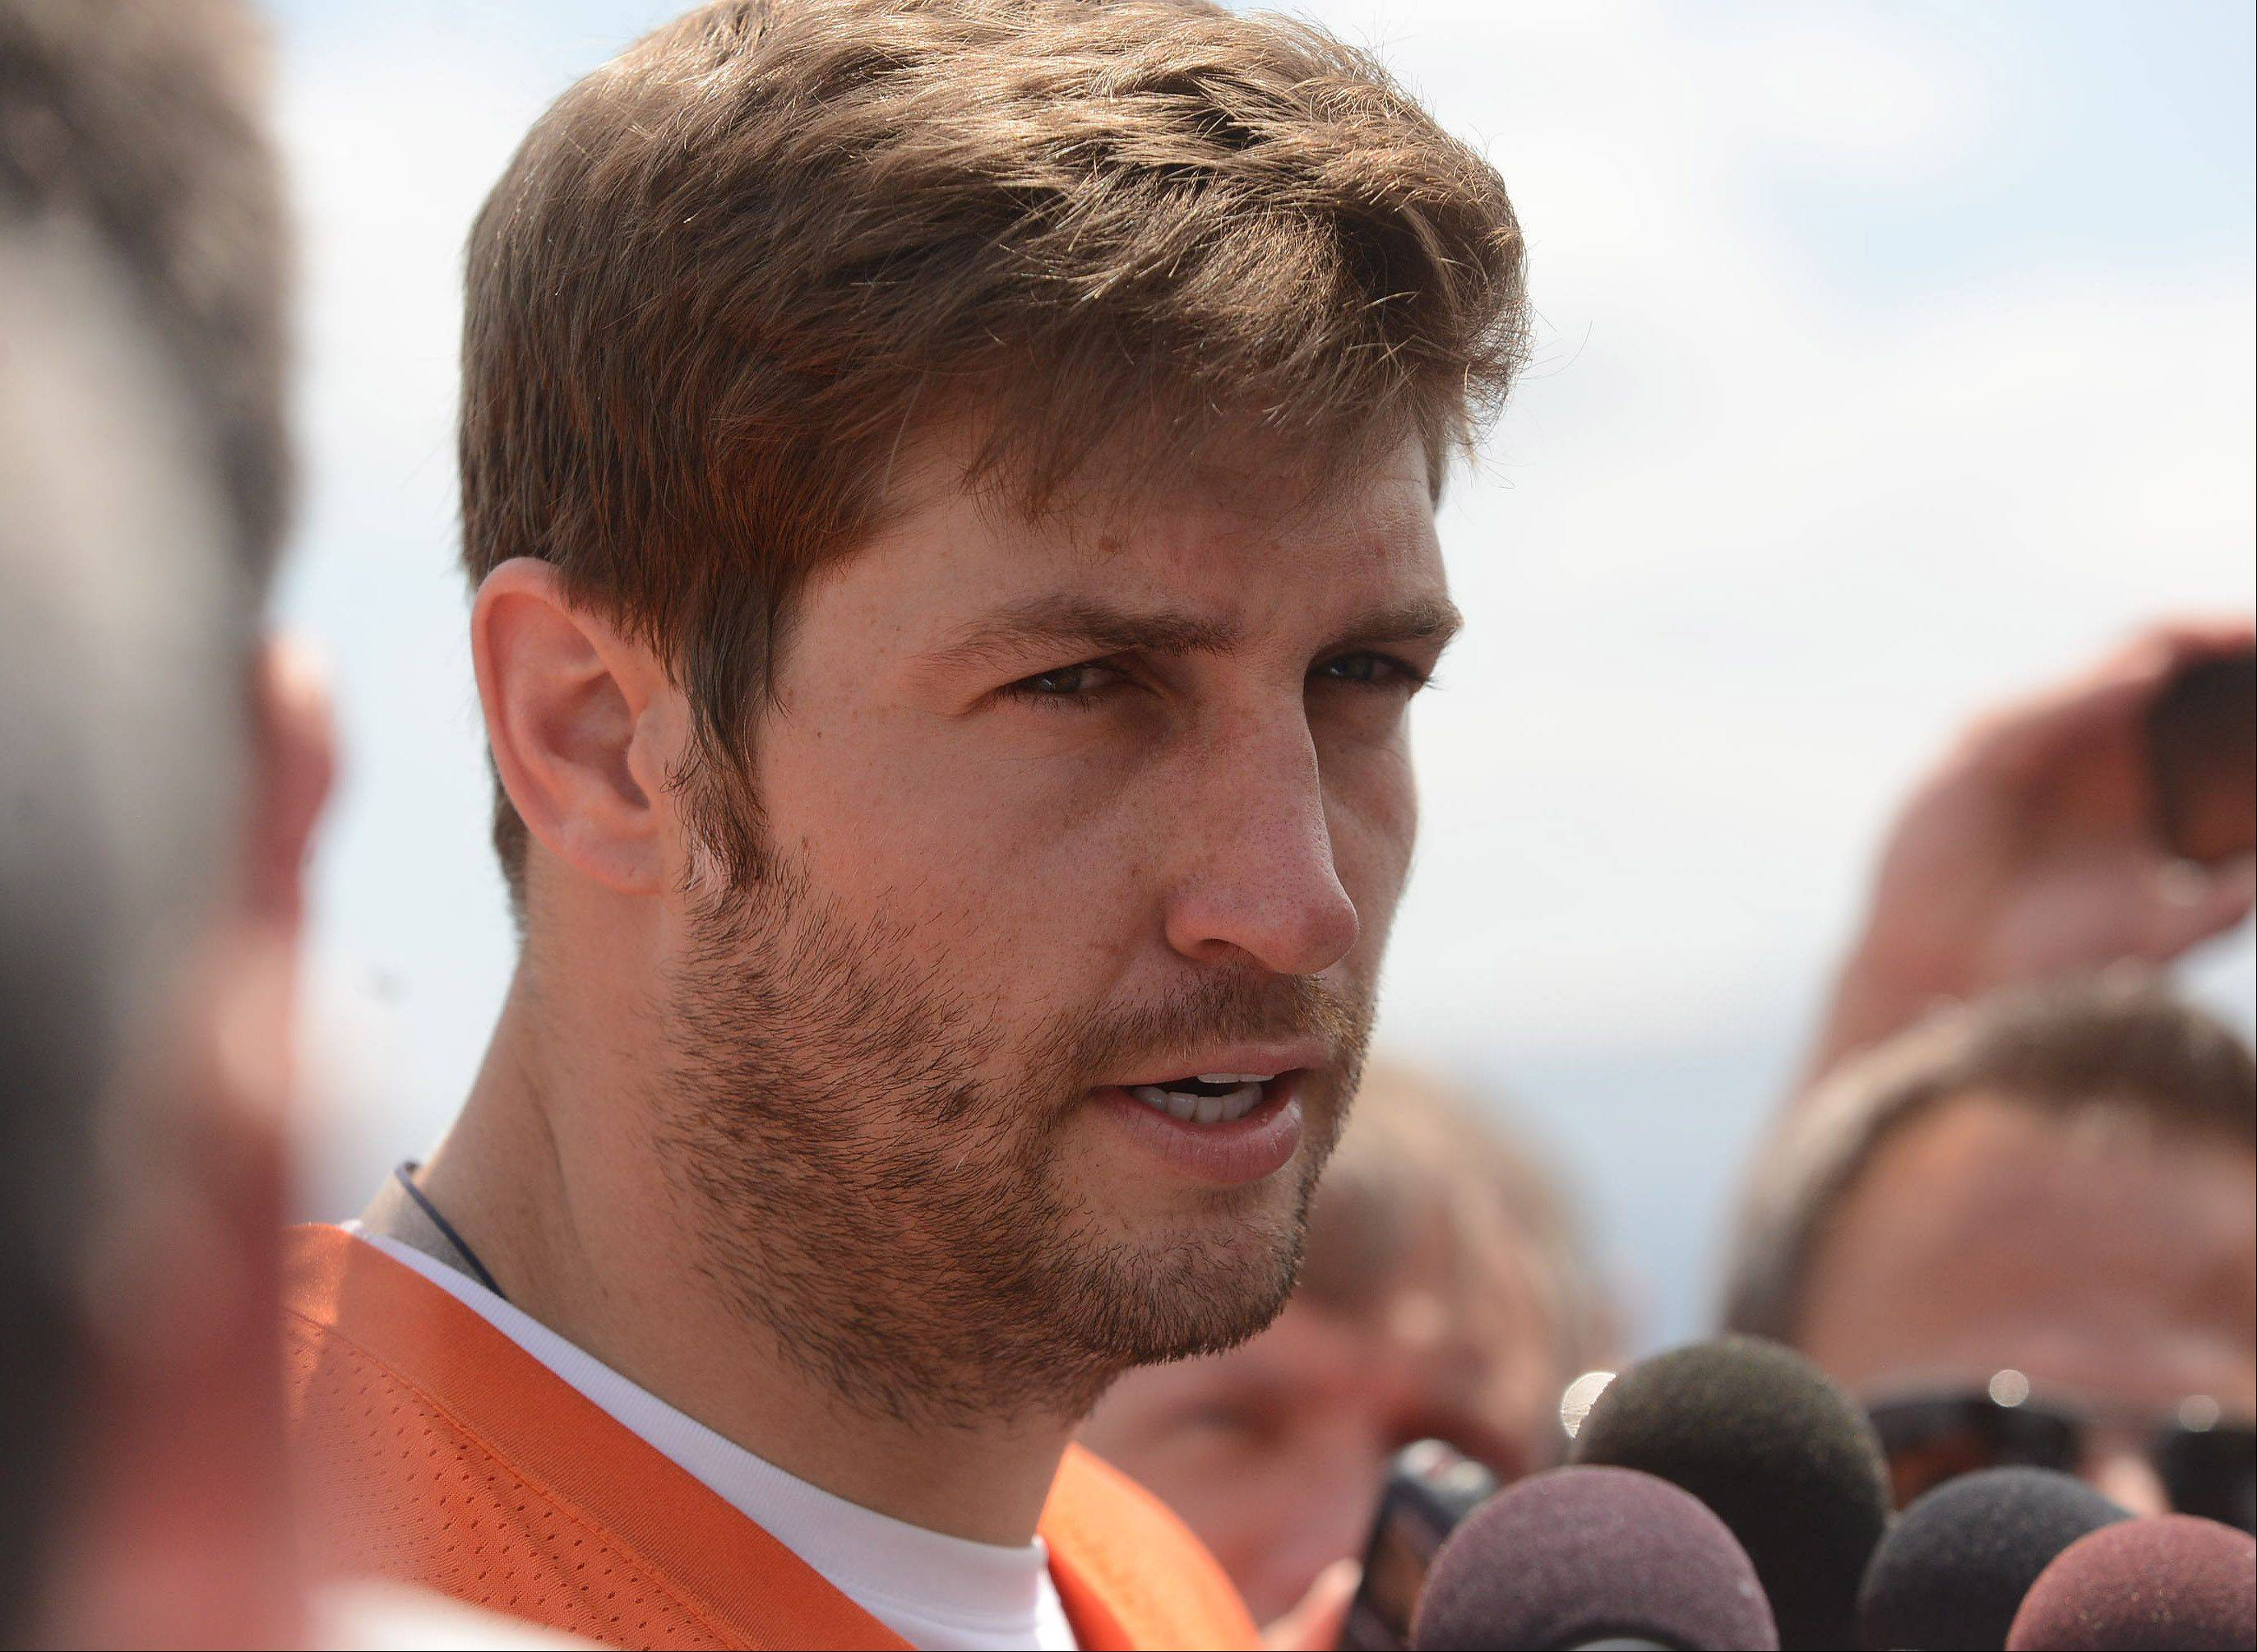 He's feeling better, but quarter Jay Cutler isn't as optimistic as Brandon Marshall is about when Cutler will be cleared to play for the Bears.